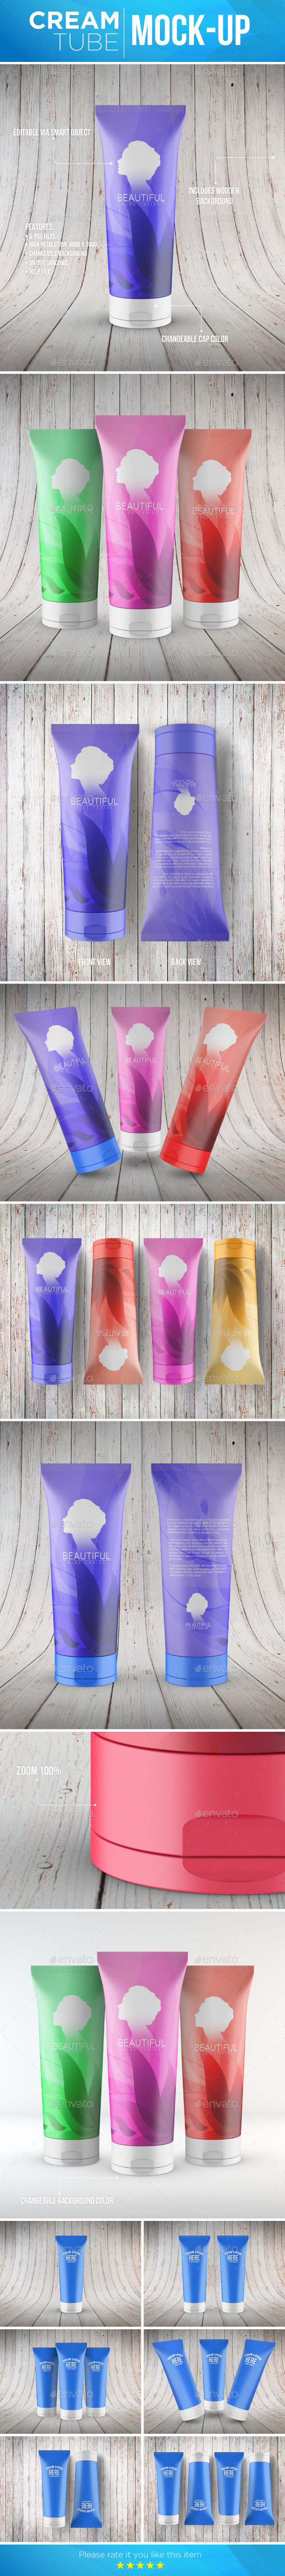 Cream Tube Mock-Up - Beauty Packaging